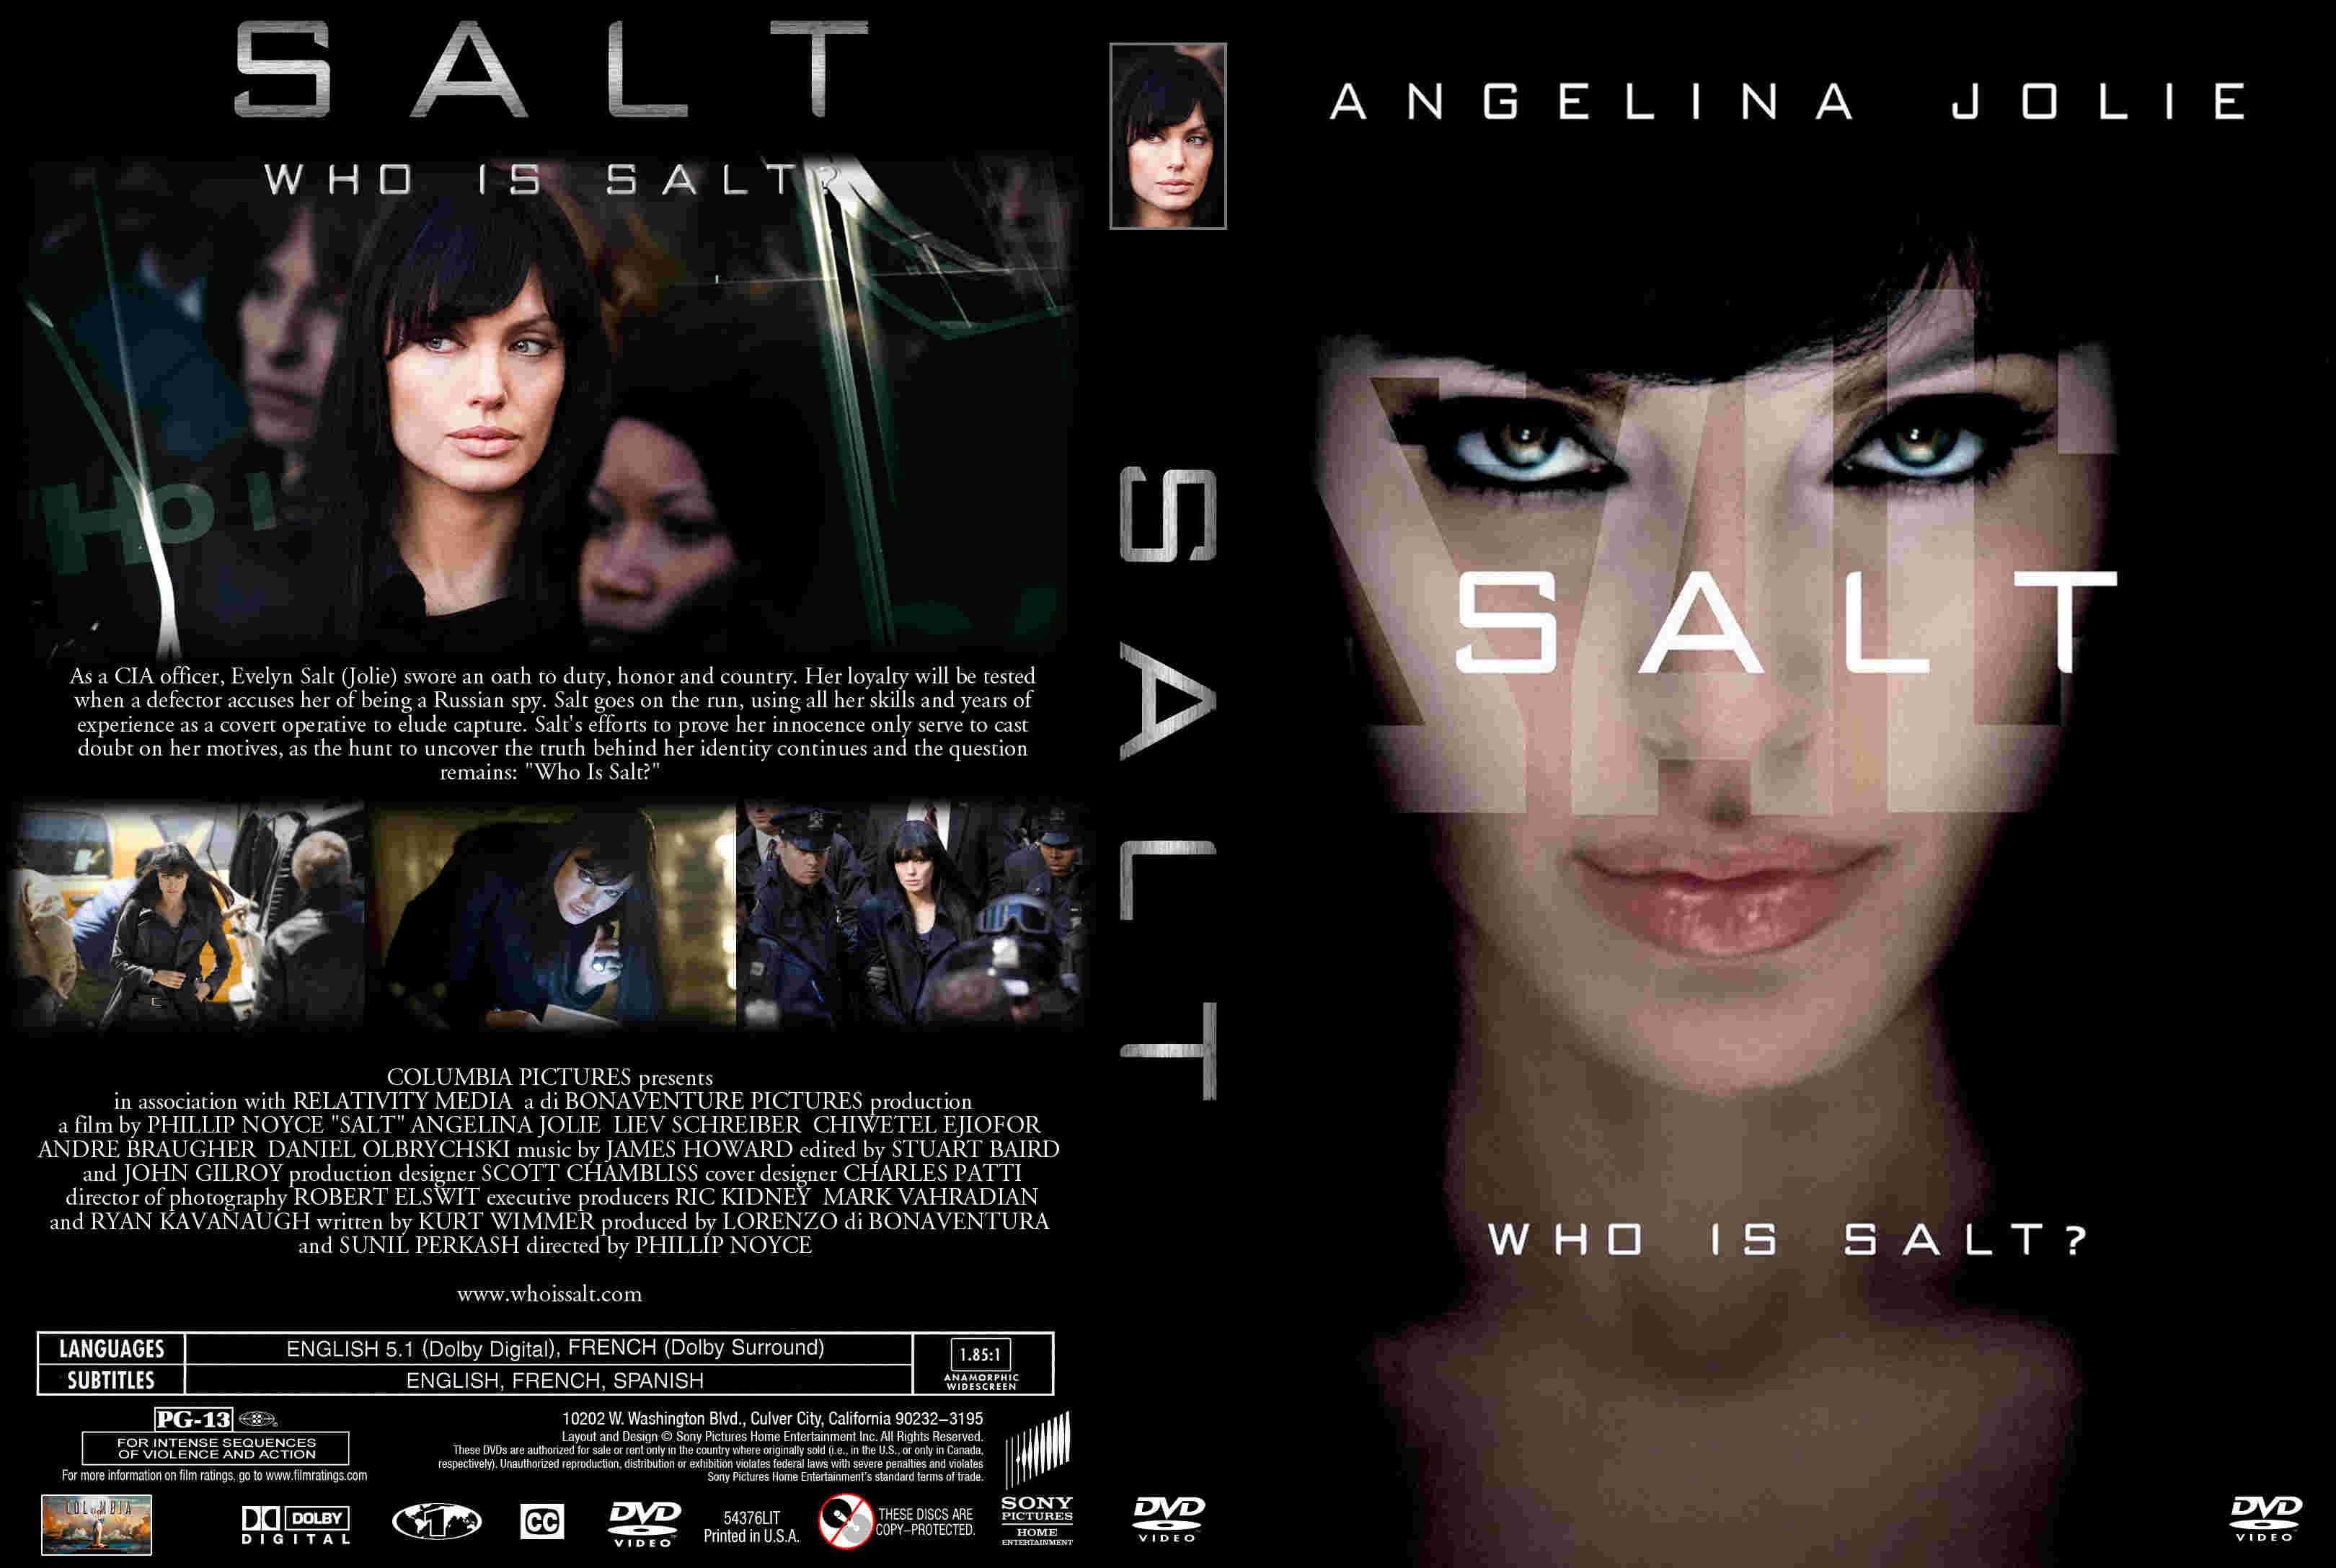 Watch Salt 2010 BluRAy Movie online Free of cost from